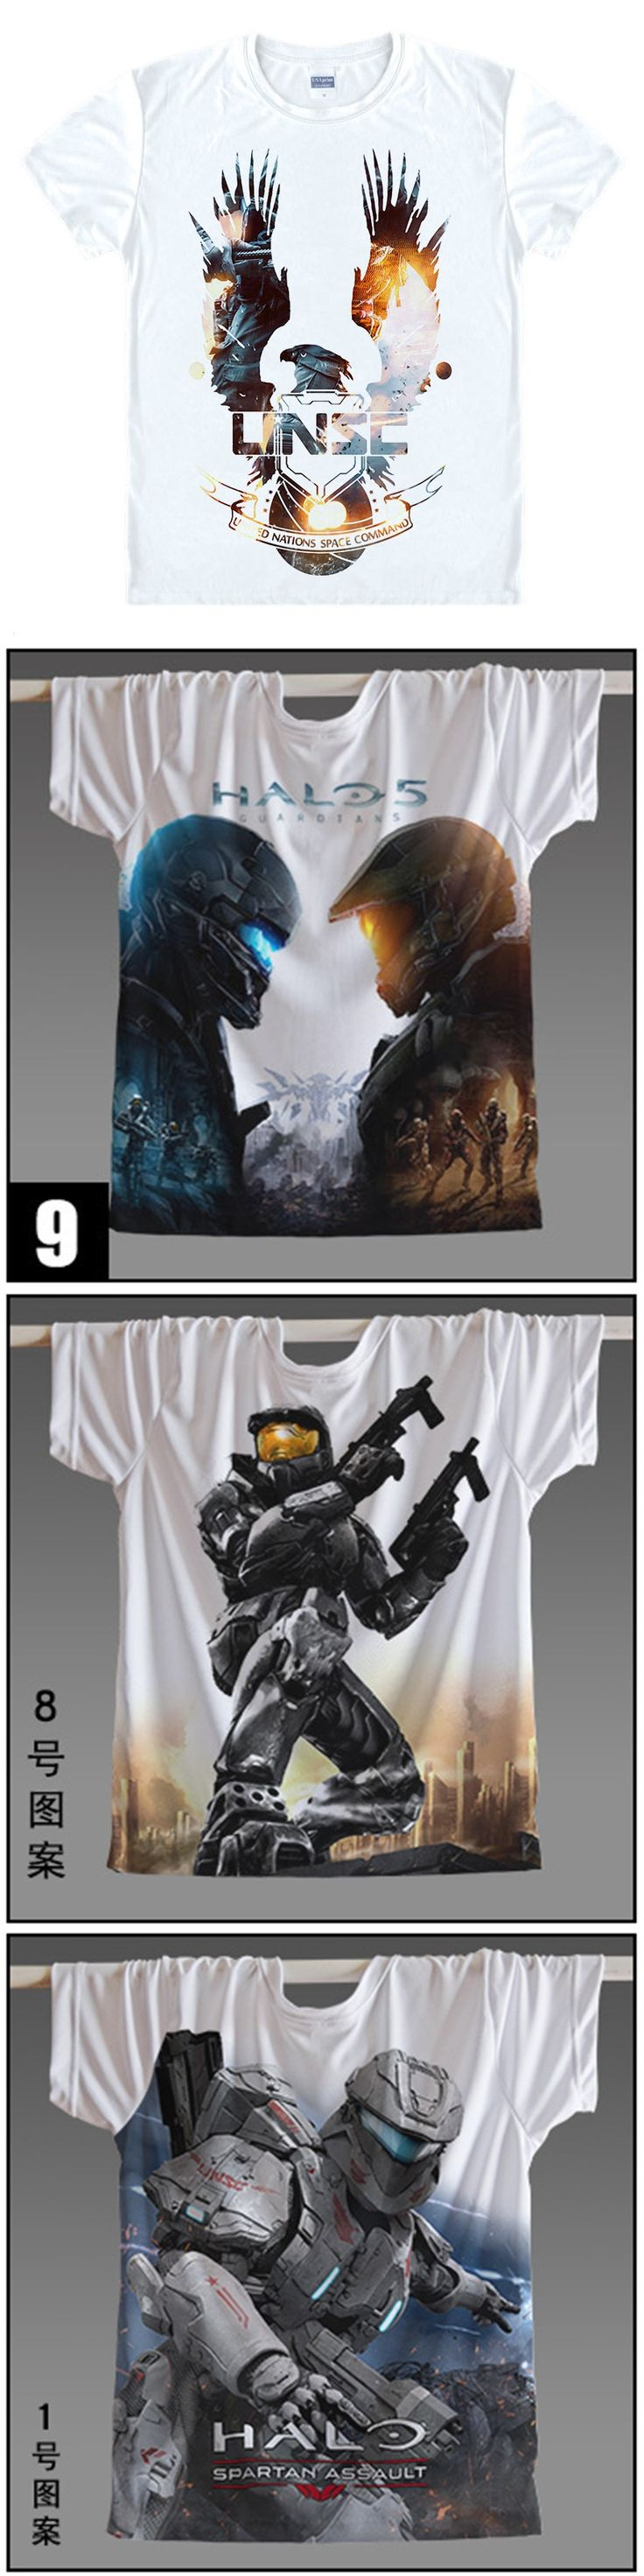 Game Halo UNSC T Shirt  Halo Master Chief 3D Printed Men Women t-shirt  anime Wars Game t shirts Wholesale Custom Tshirt